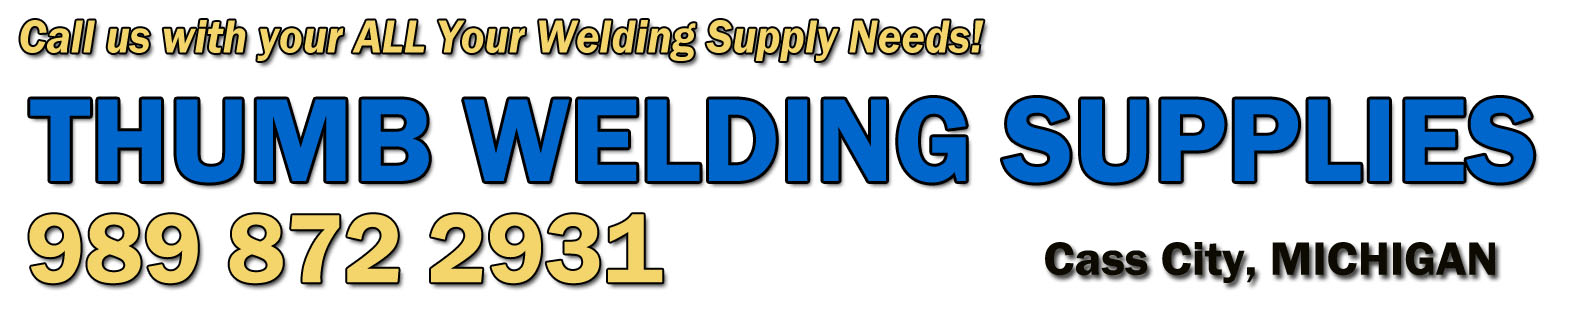 Welcome - Thumb Welding Supplies, Inc